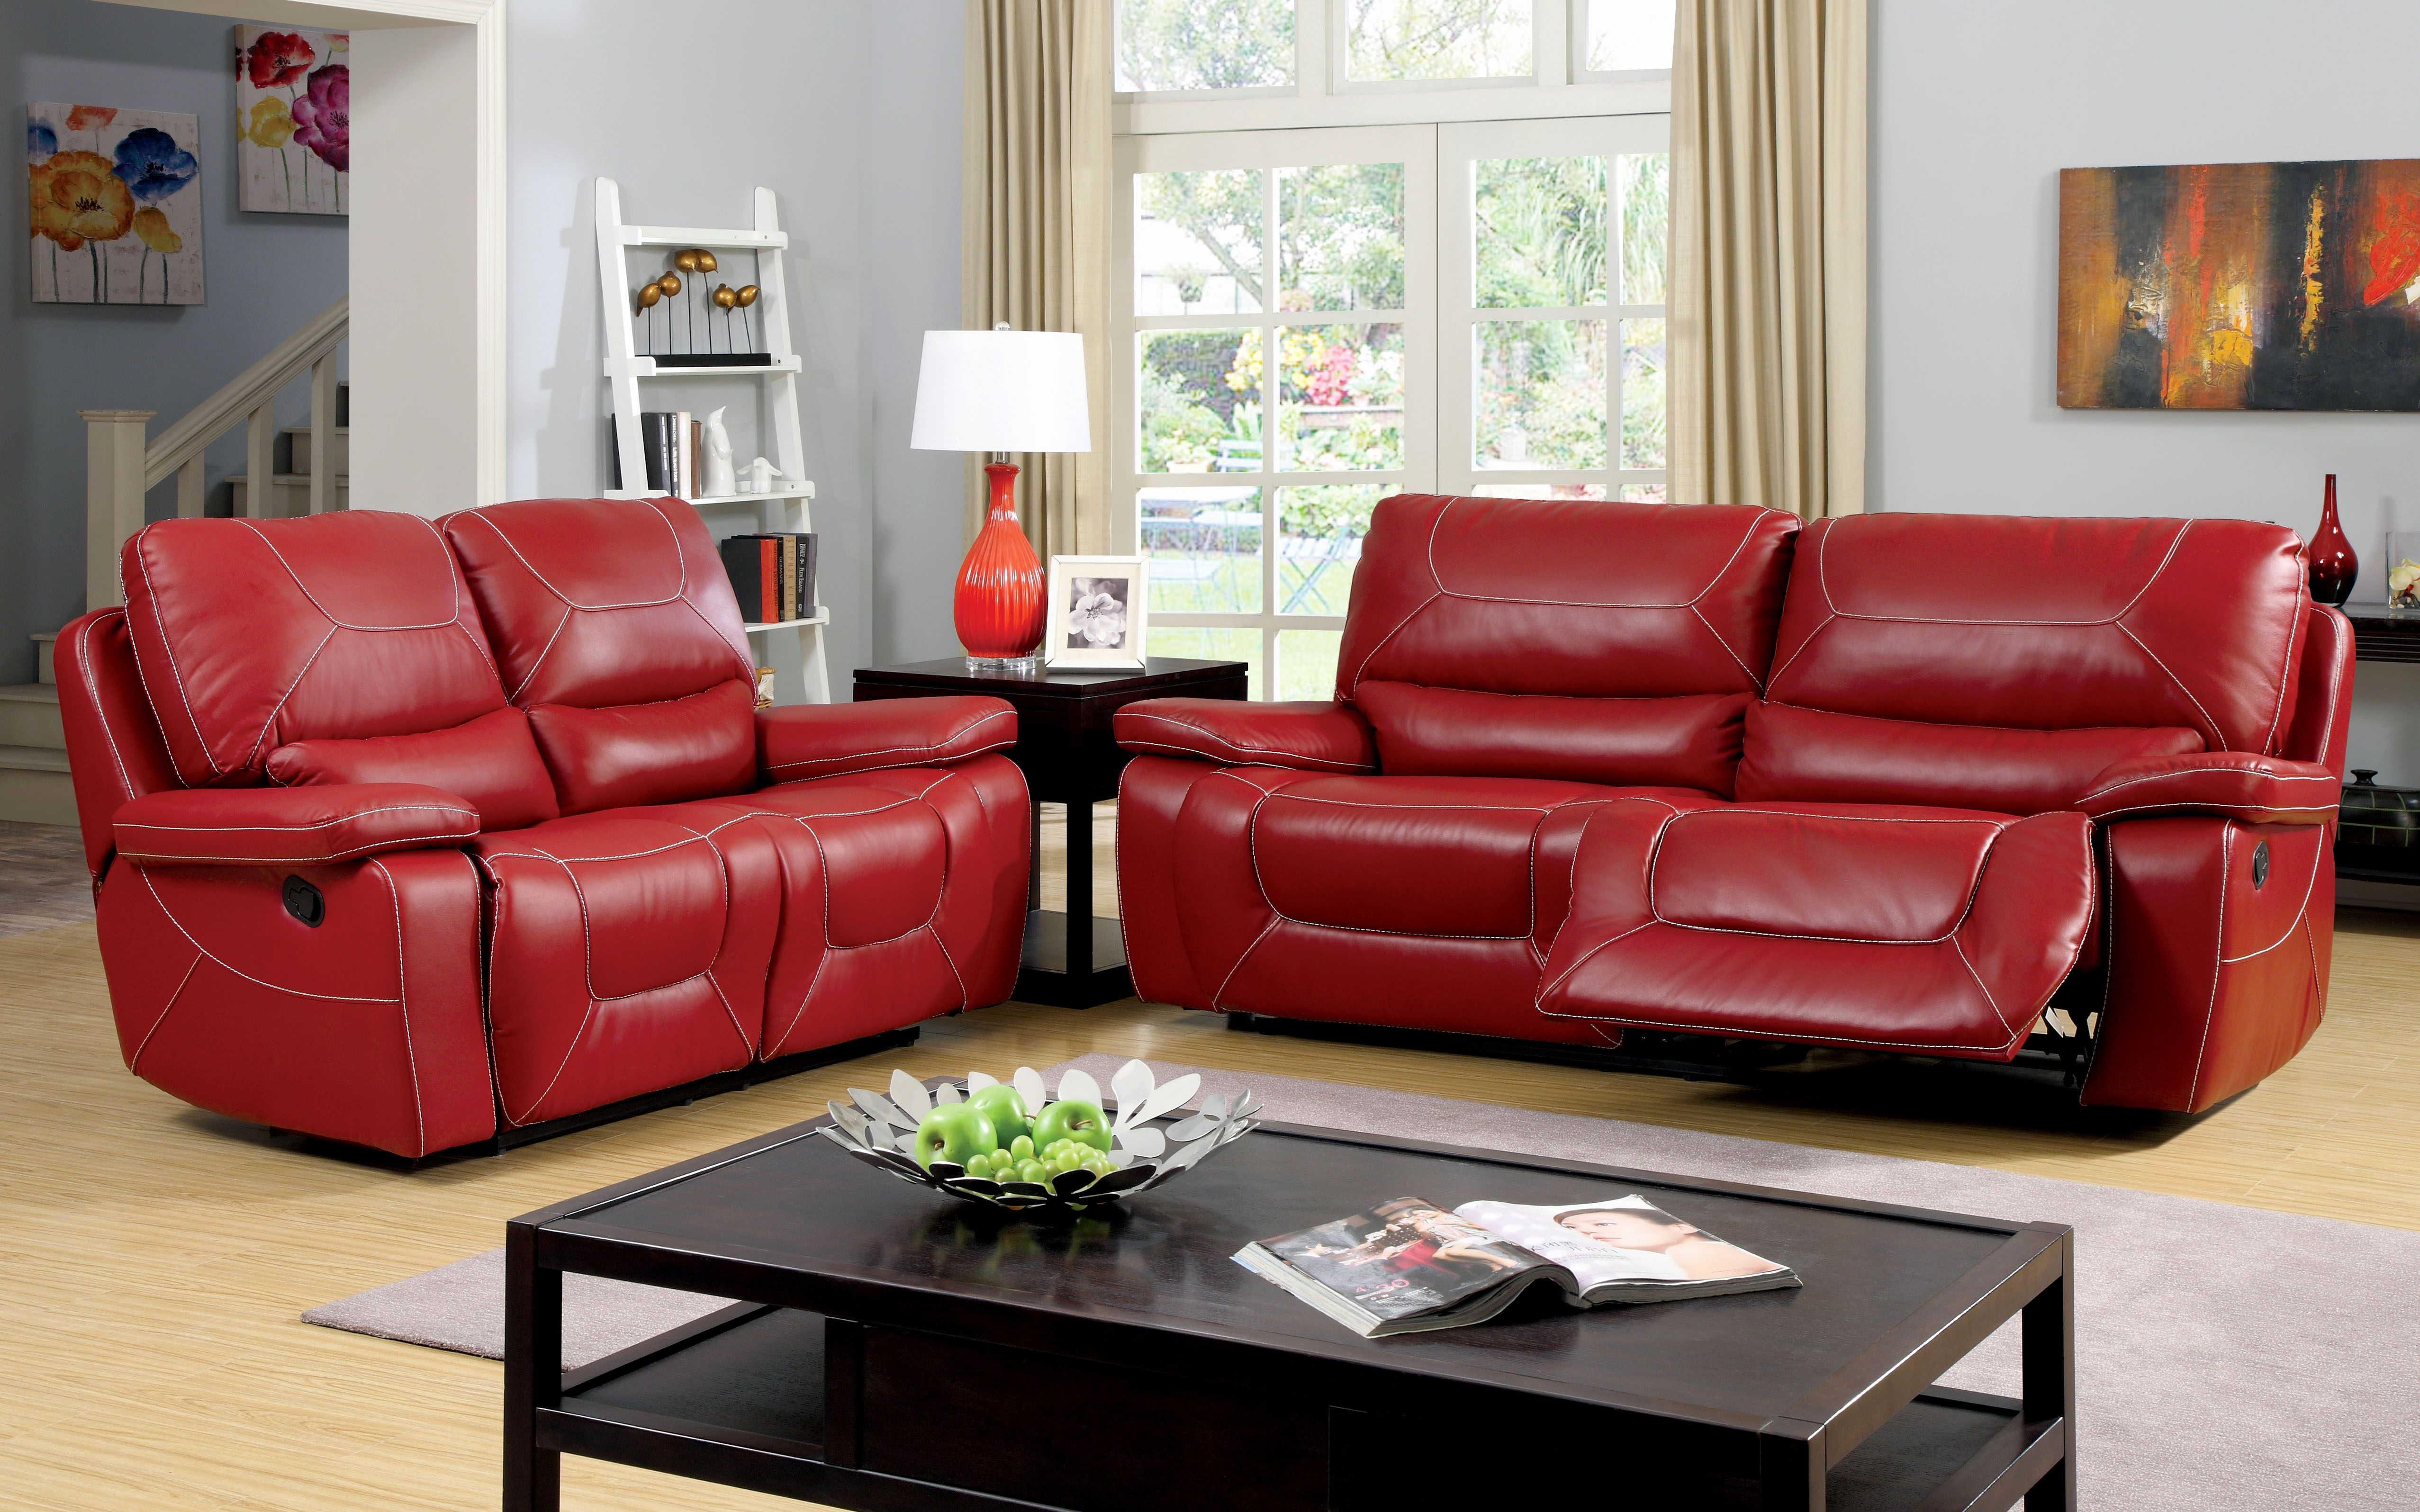 Red Reclining Sofa Microfiber Living Room Overstuffed